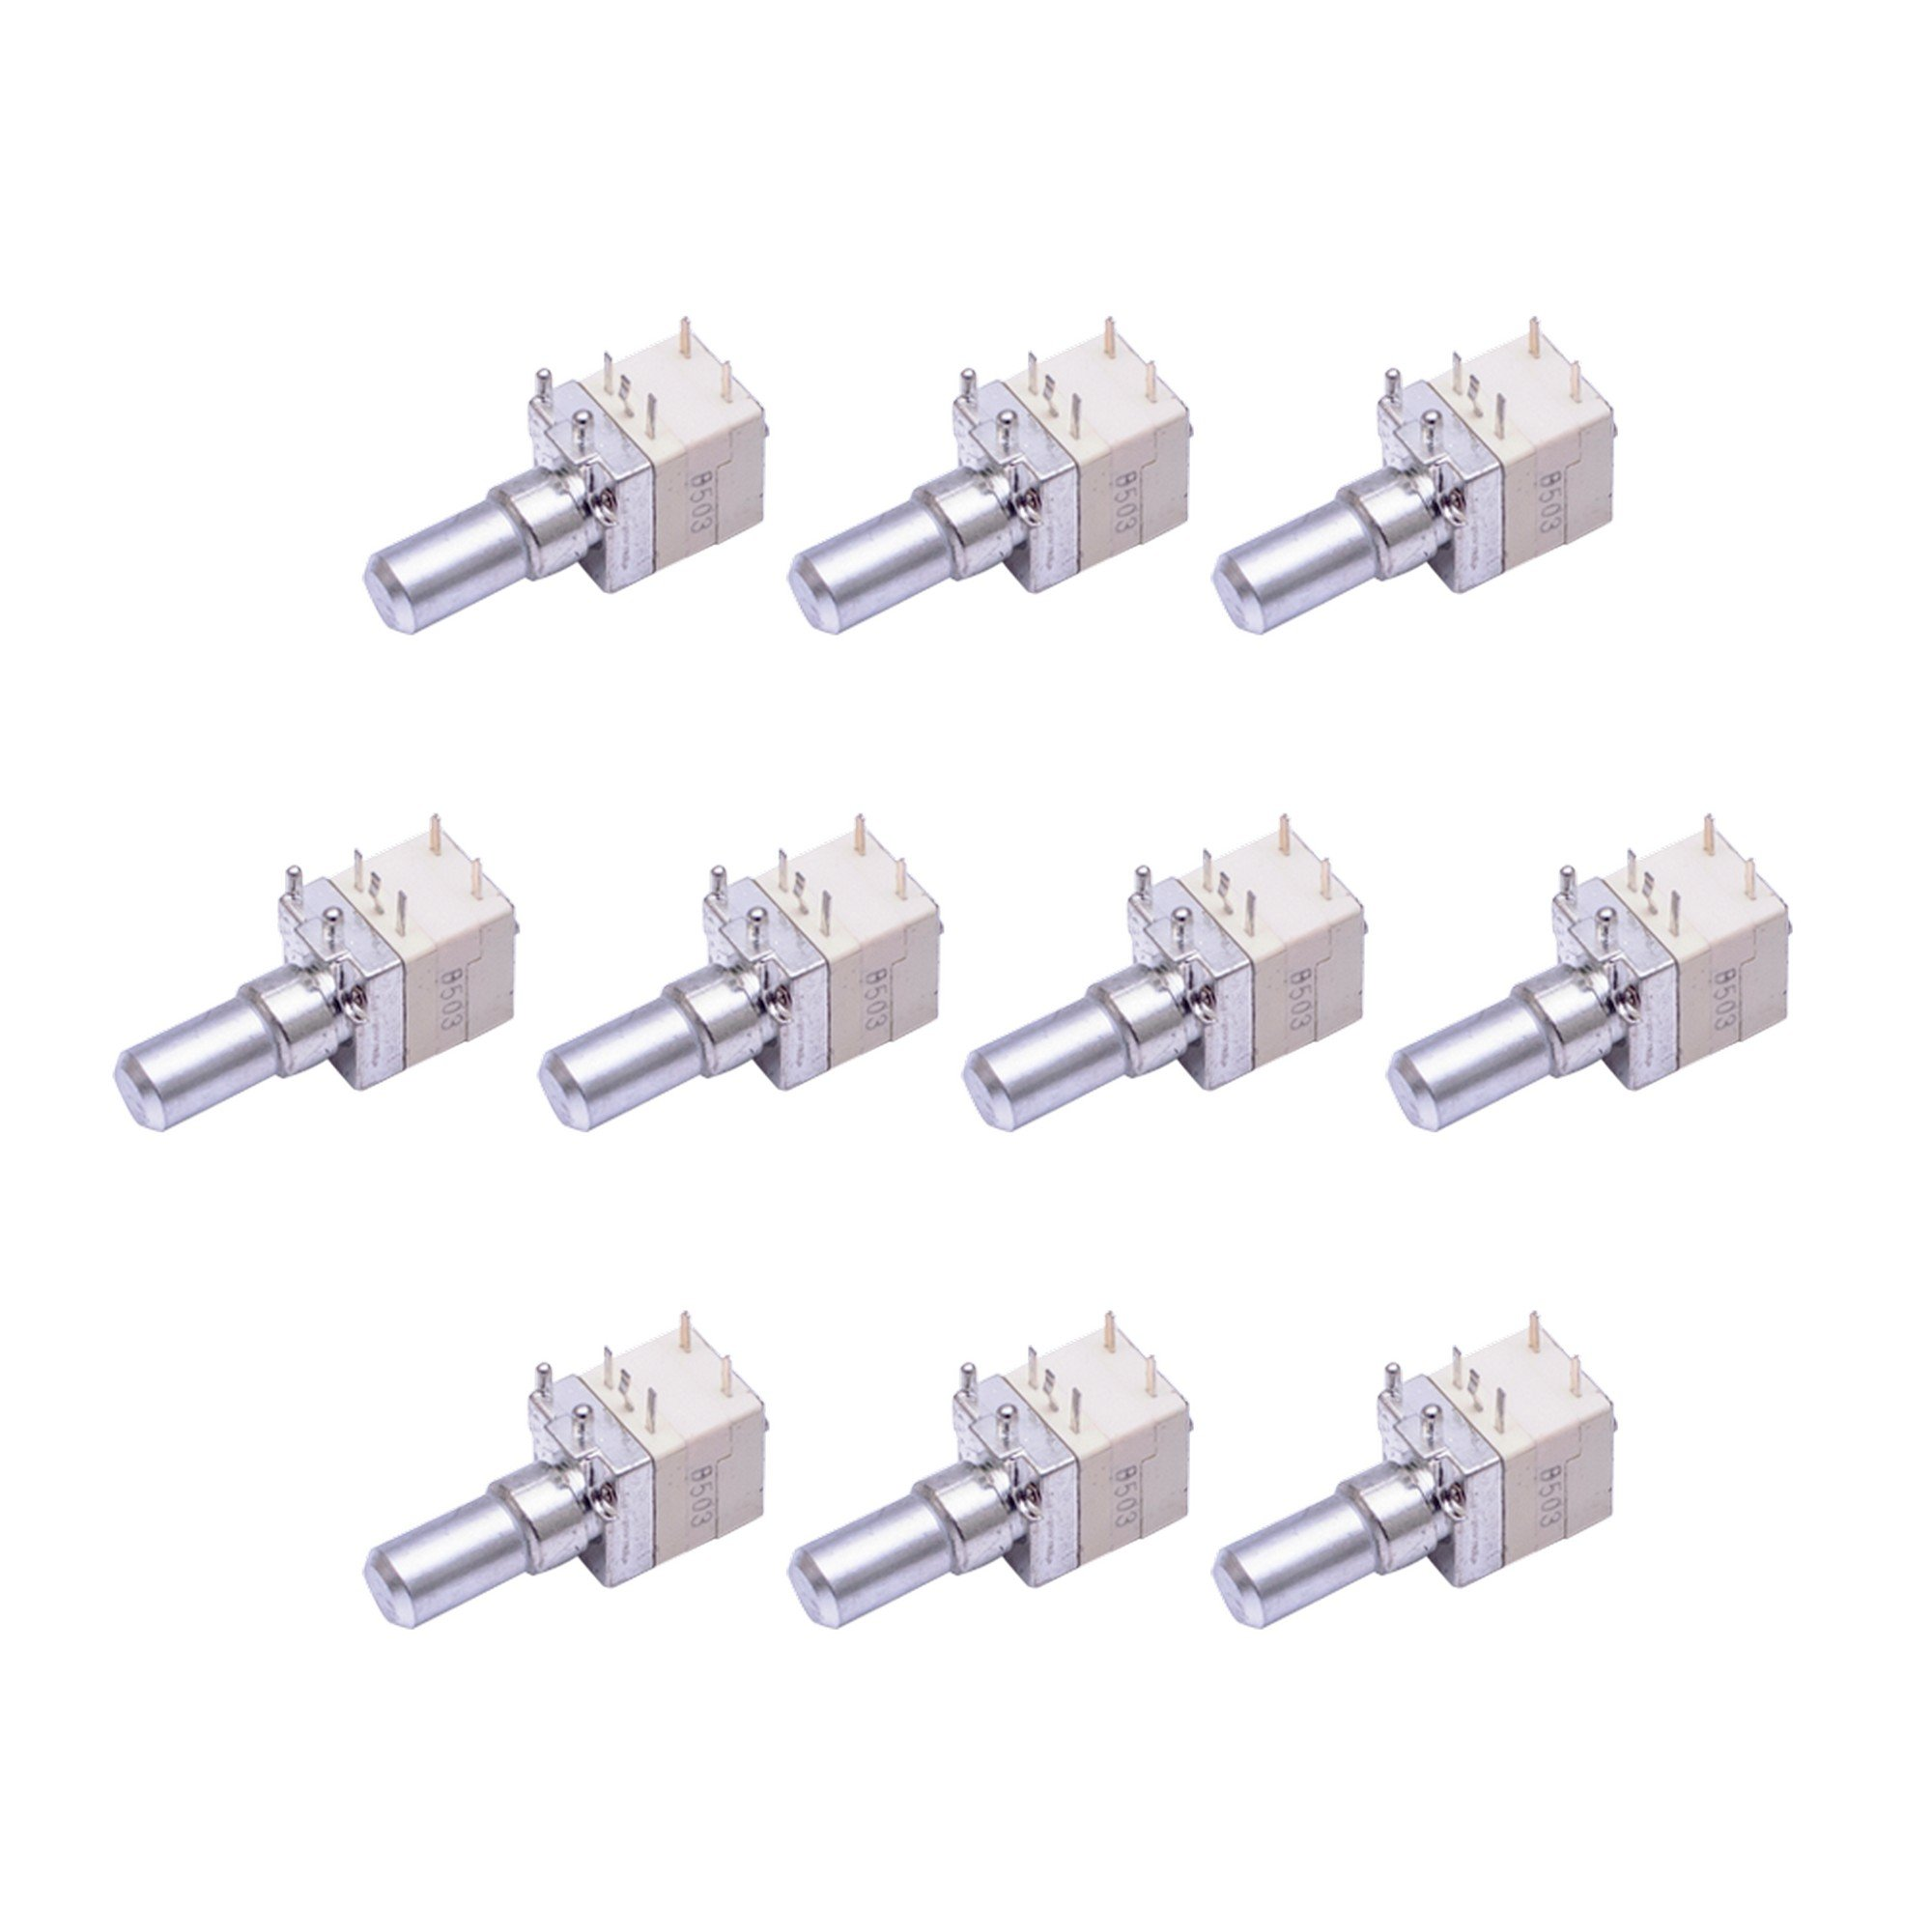 10 Pack Maxtop ACC-VSCP200 Replacement Volume Control (16 CH) for Motorola CP200